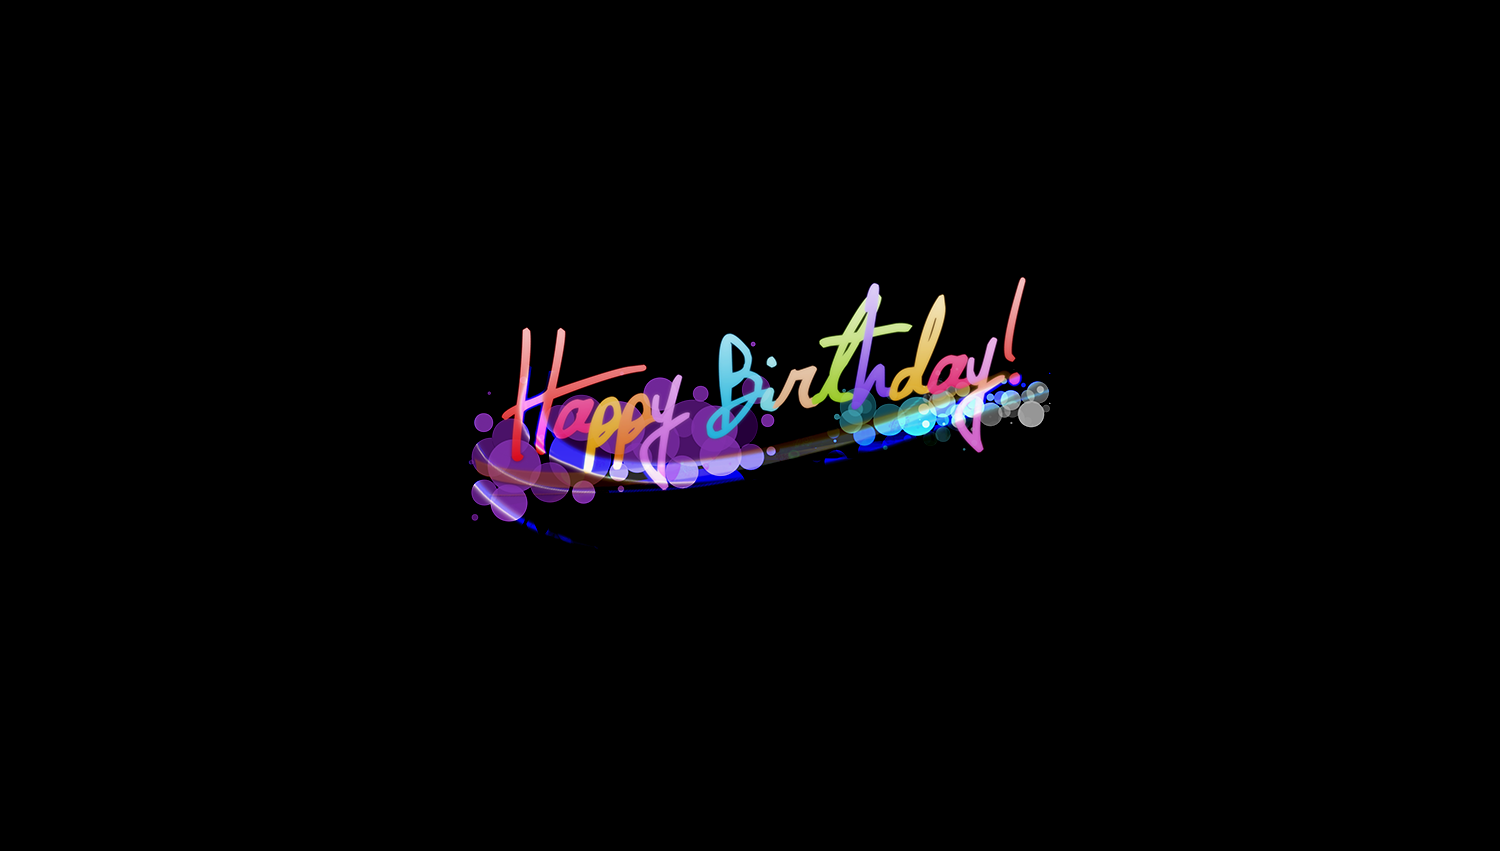 48 PC Happy Birthday Wallpapers In Amazing Collection